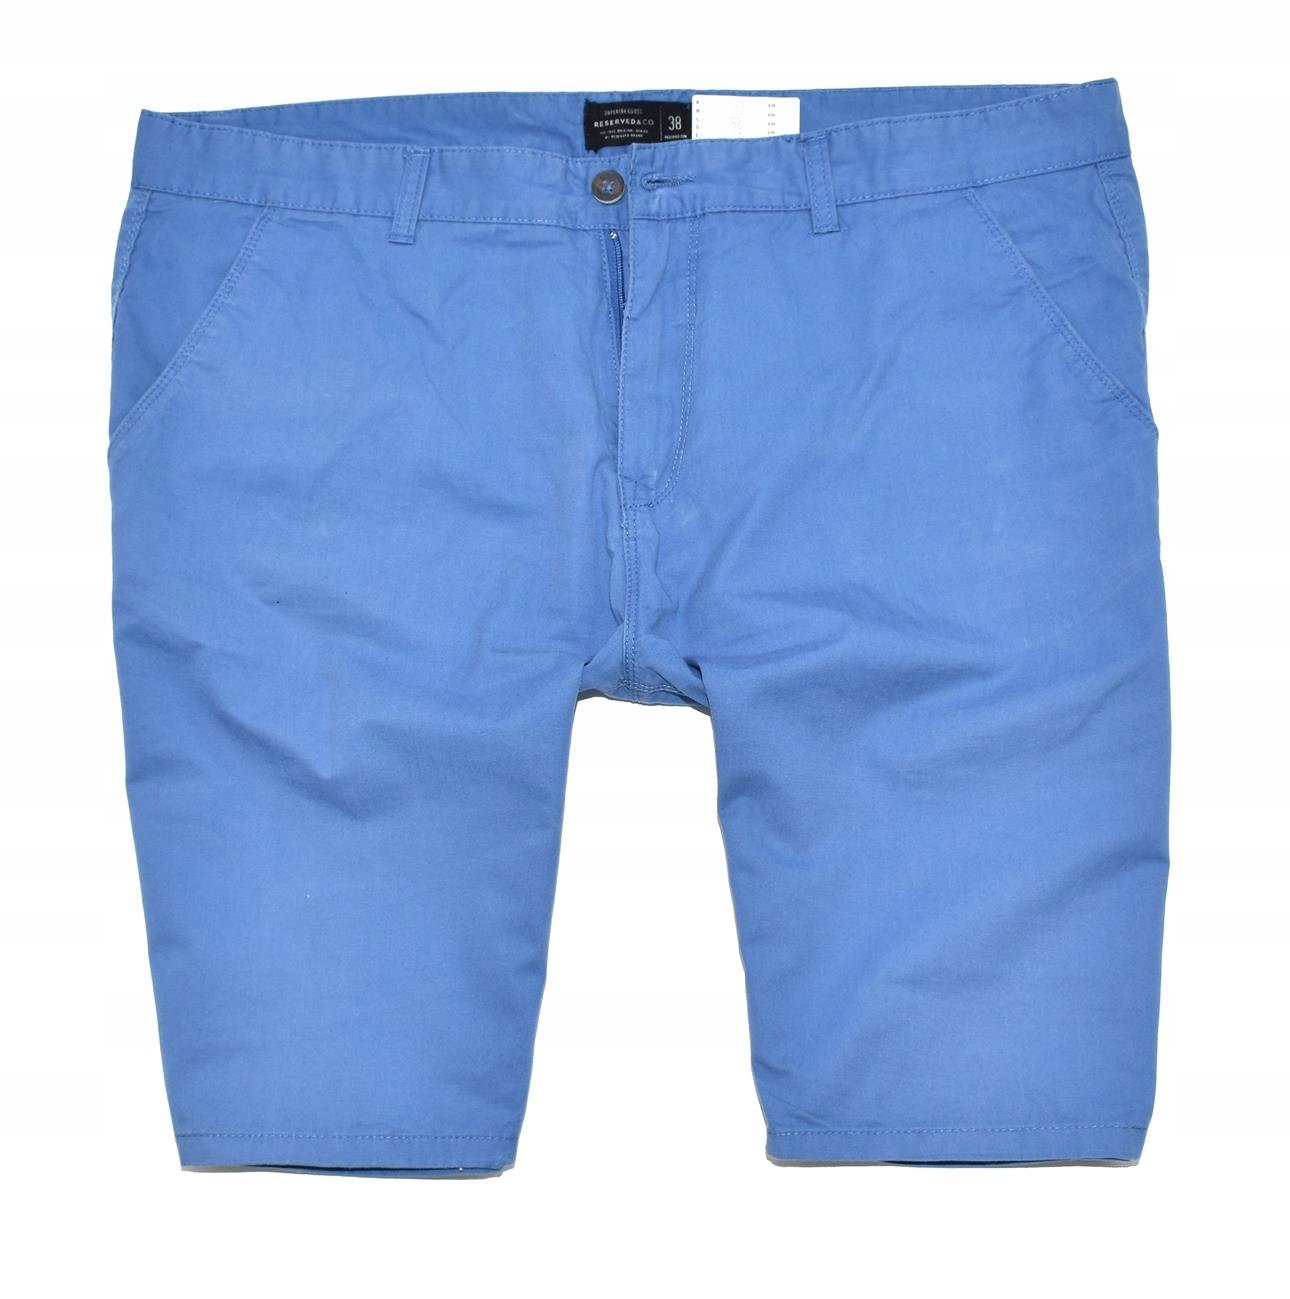 MM 133 RESEVED_TRENDY SEA CASUAL SHORTS_2XL